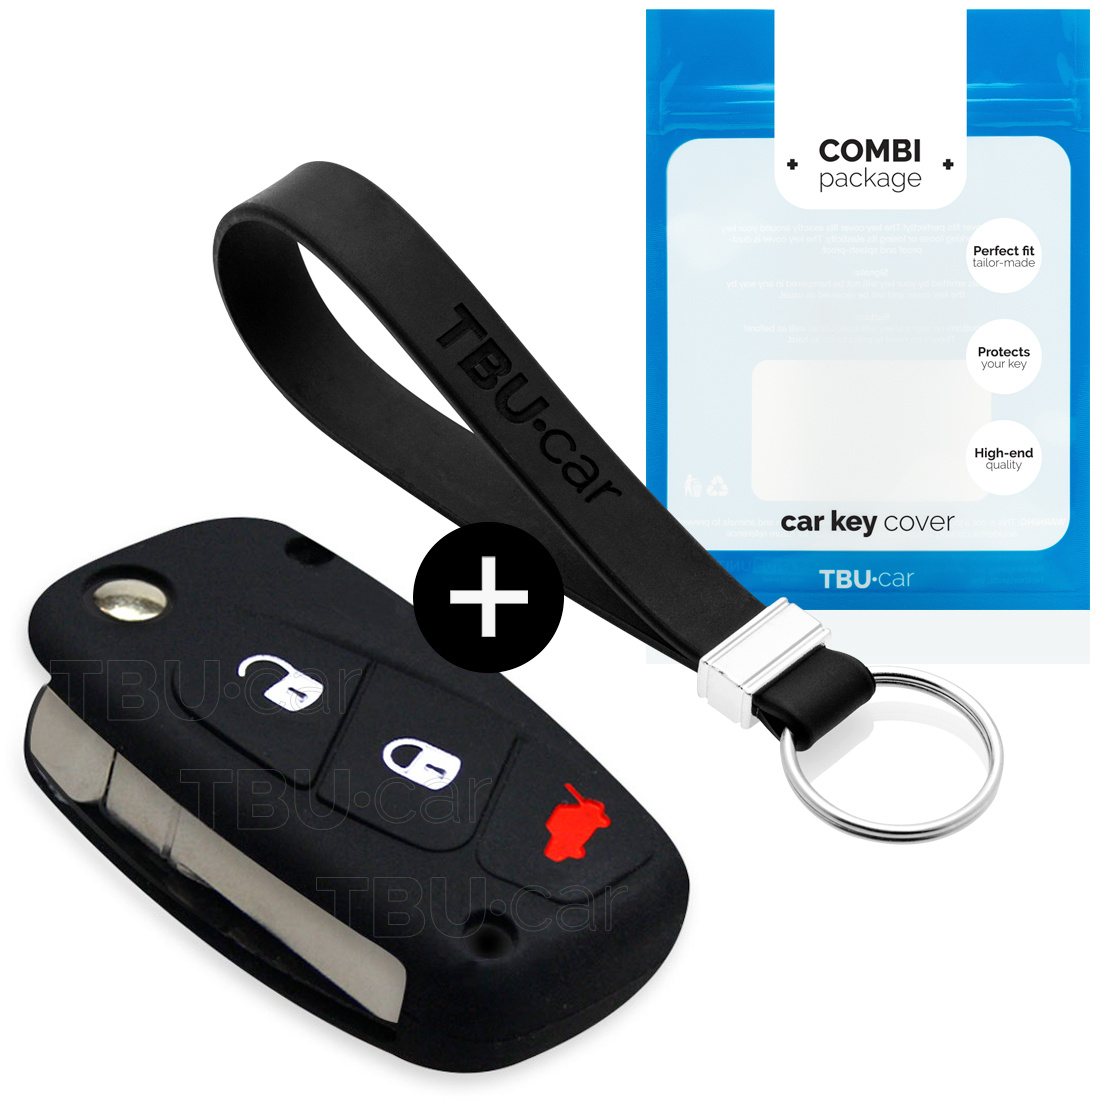 Lancia Car key cover - Silicone Protective Remote Key Shell - FOB Case Cover - Black